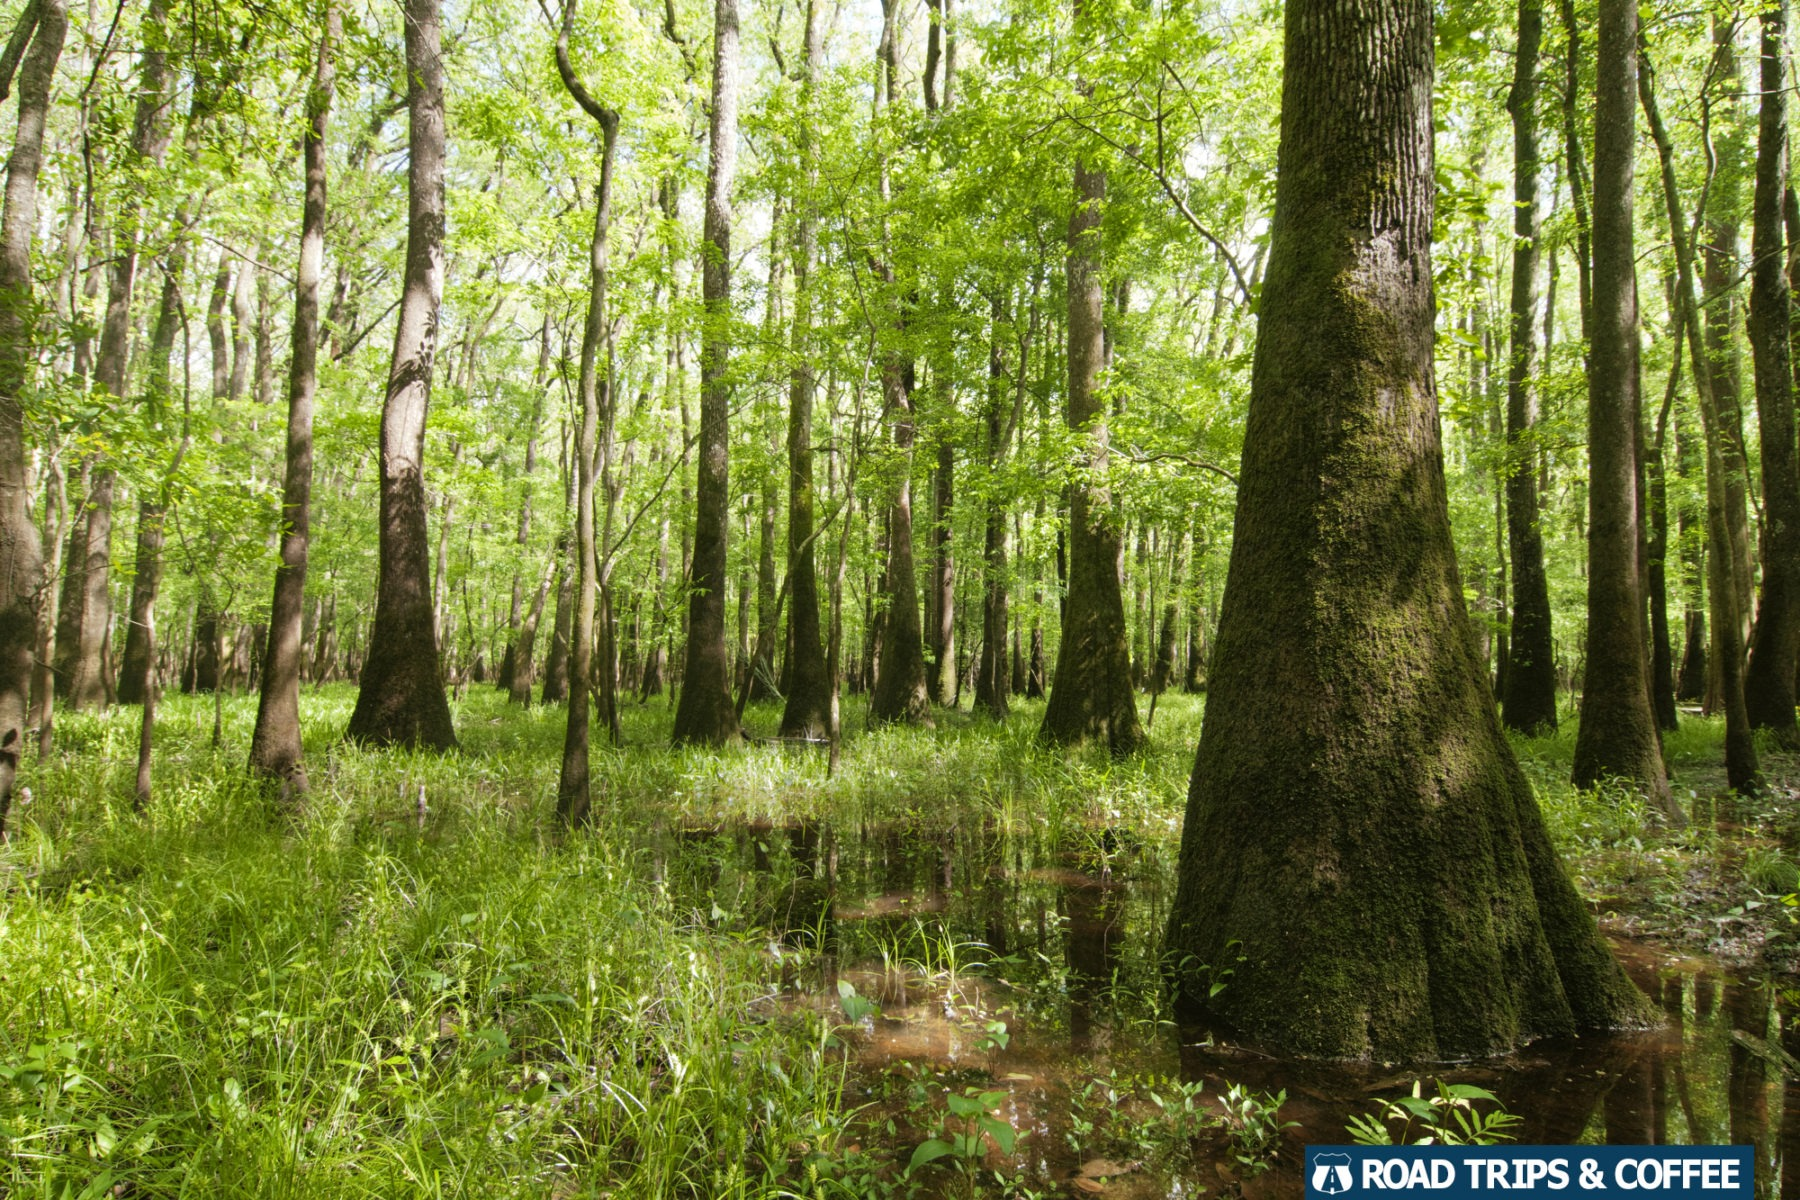 Towering, thick trees in a swamp at Congaree National Park in South Carolina